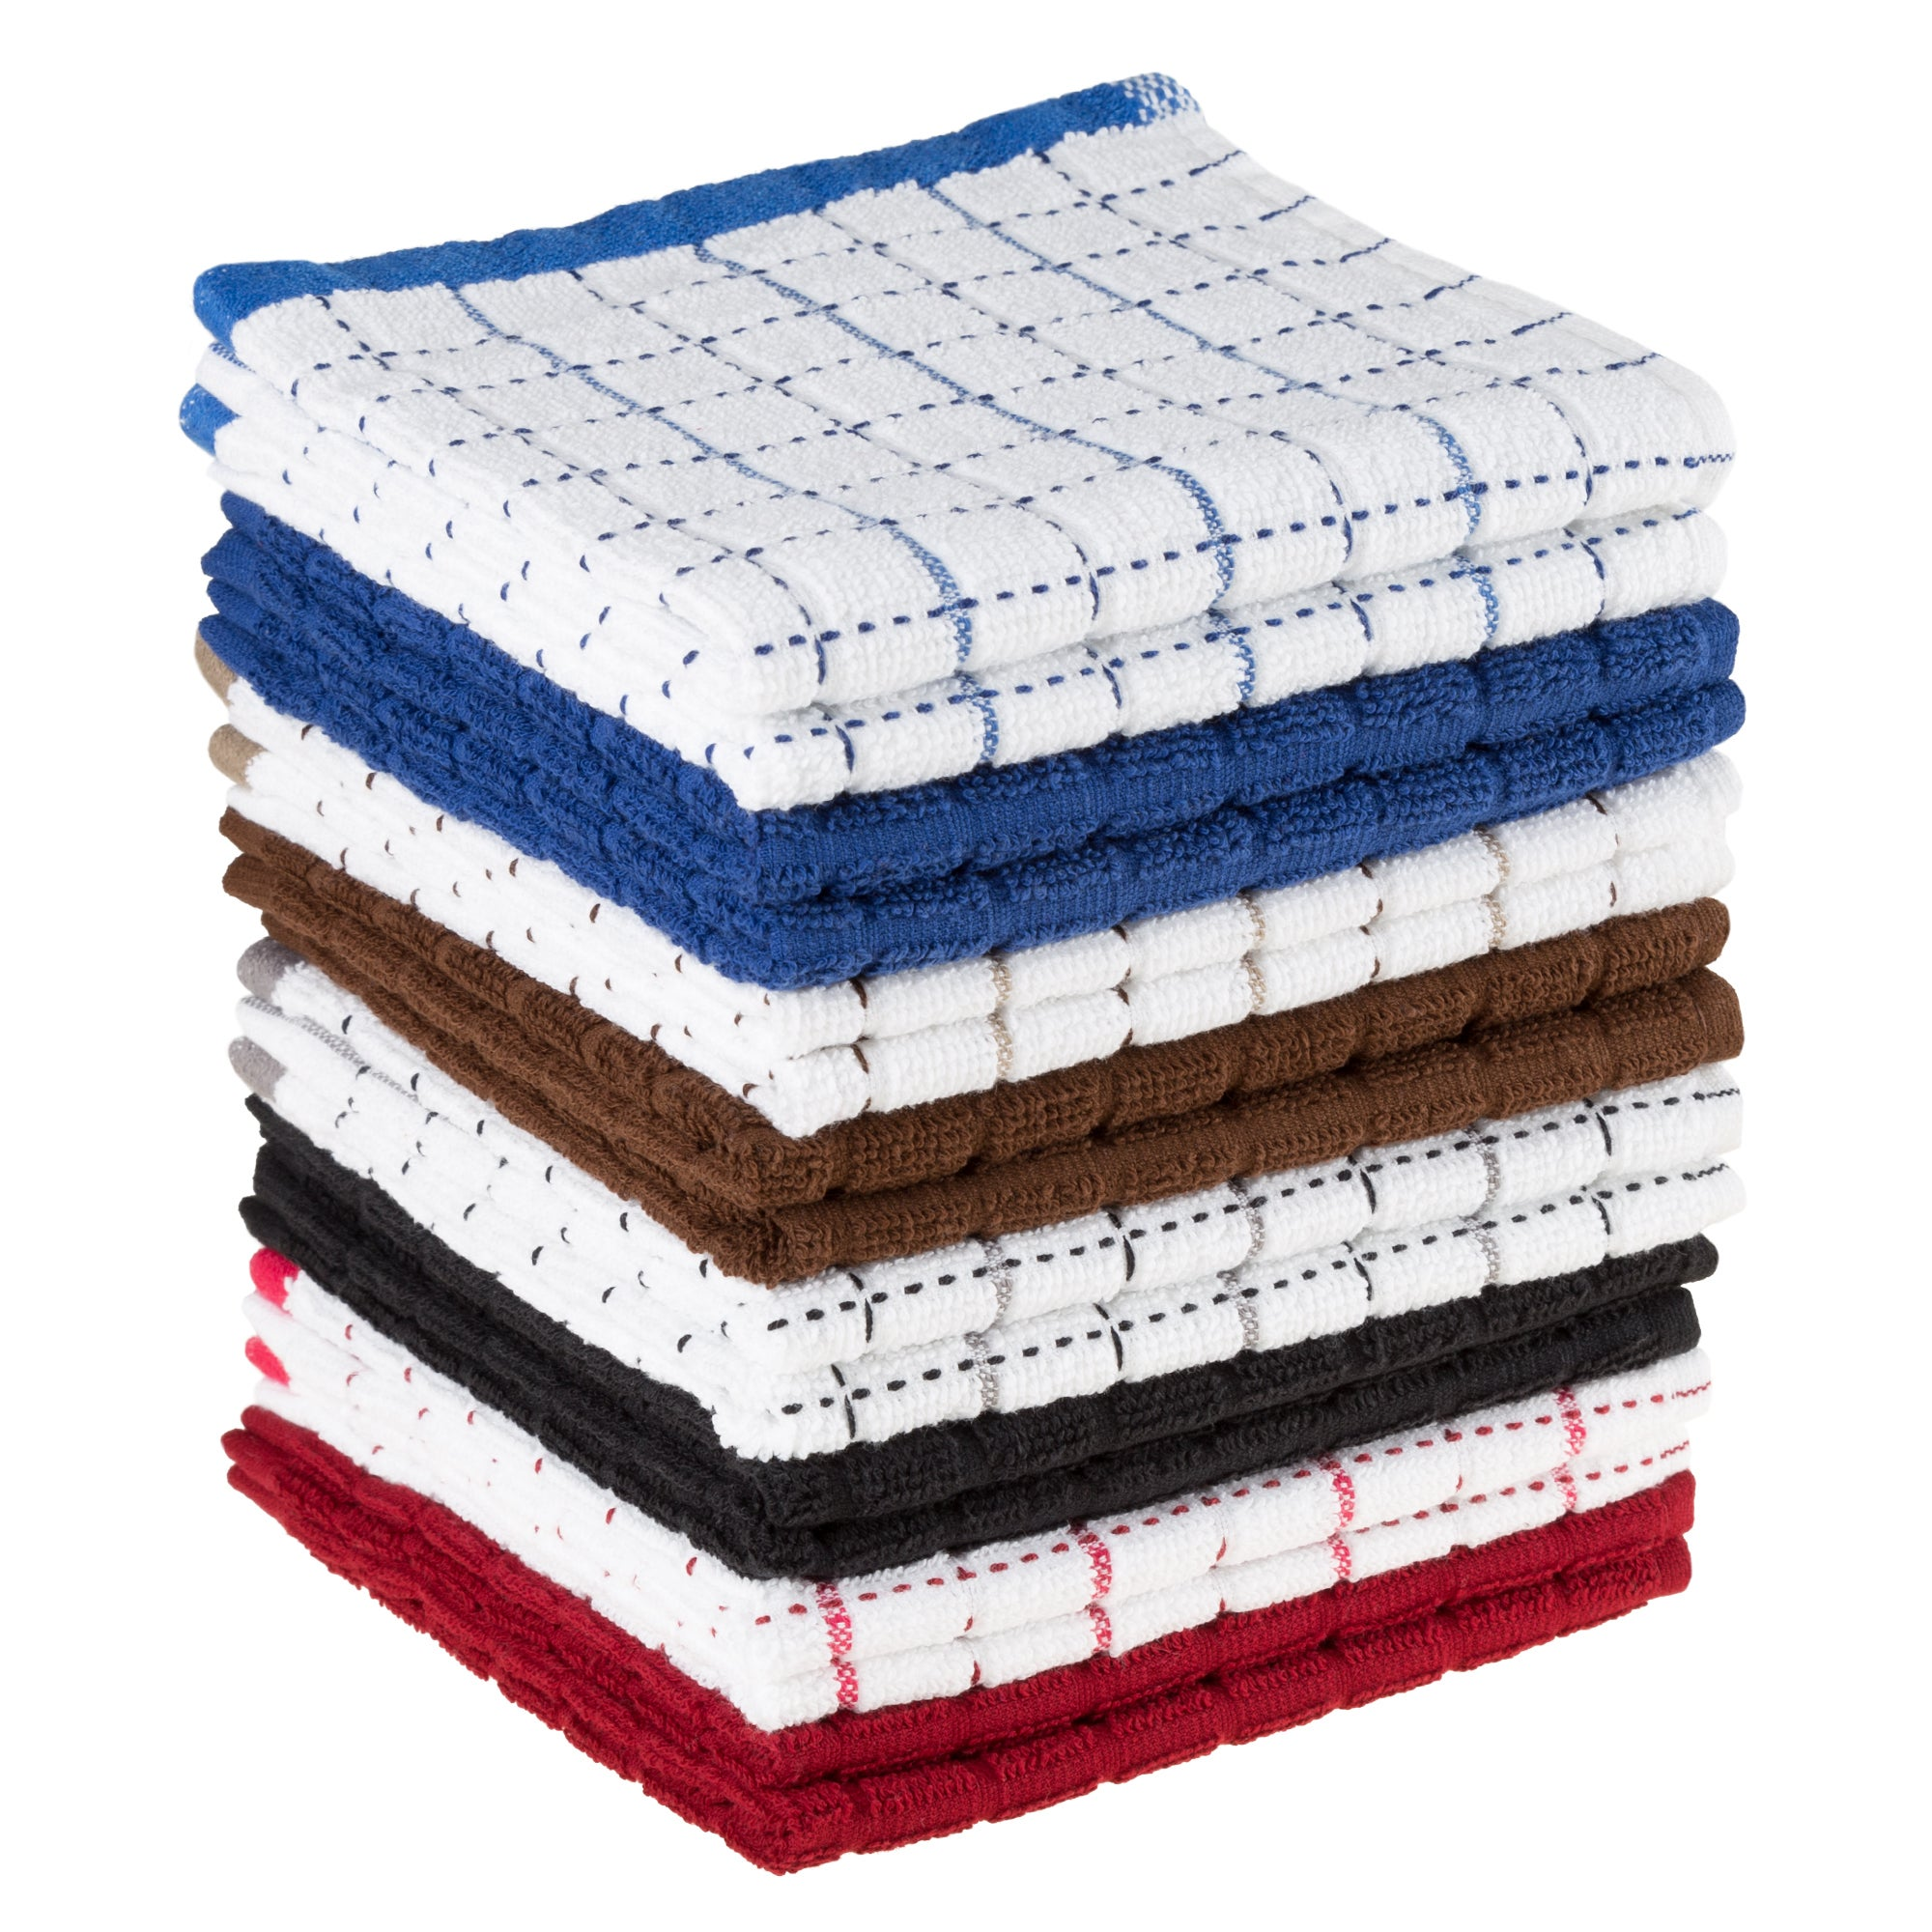 Dish Cloths Pack, Set of 16 Kitchen Wash Towels, Cleaning/Drying by ...